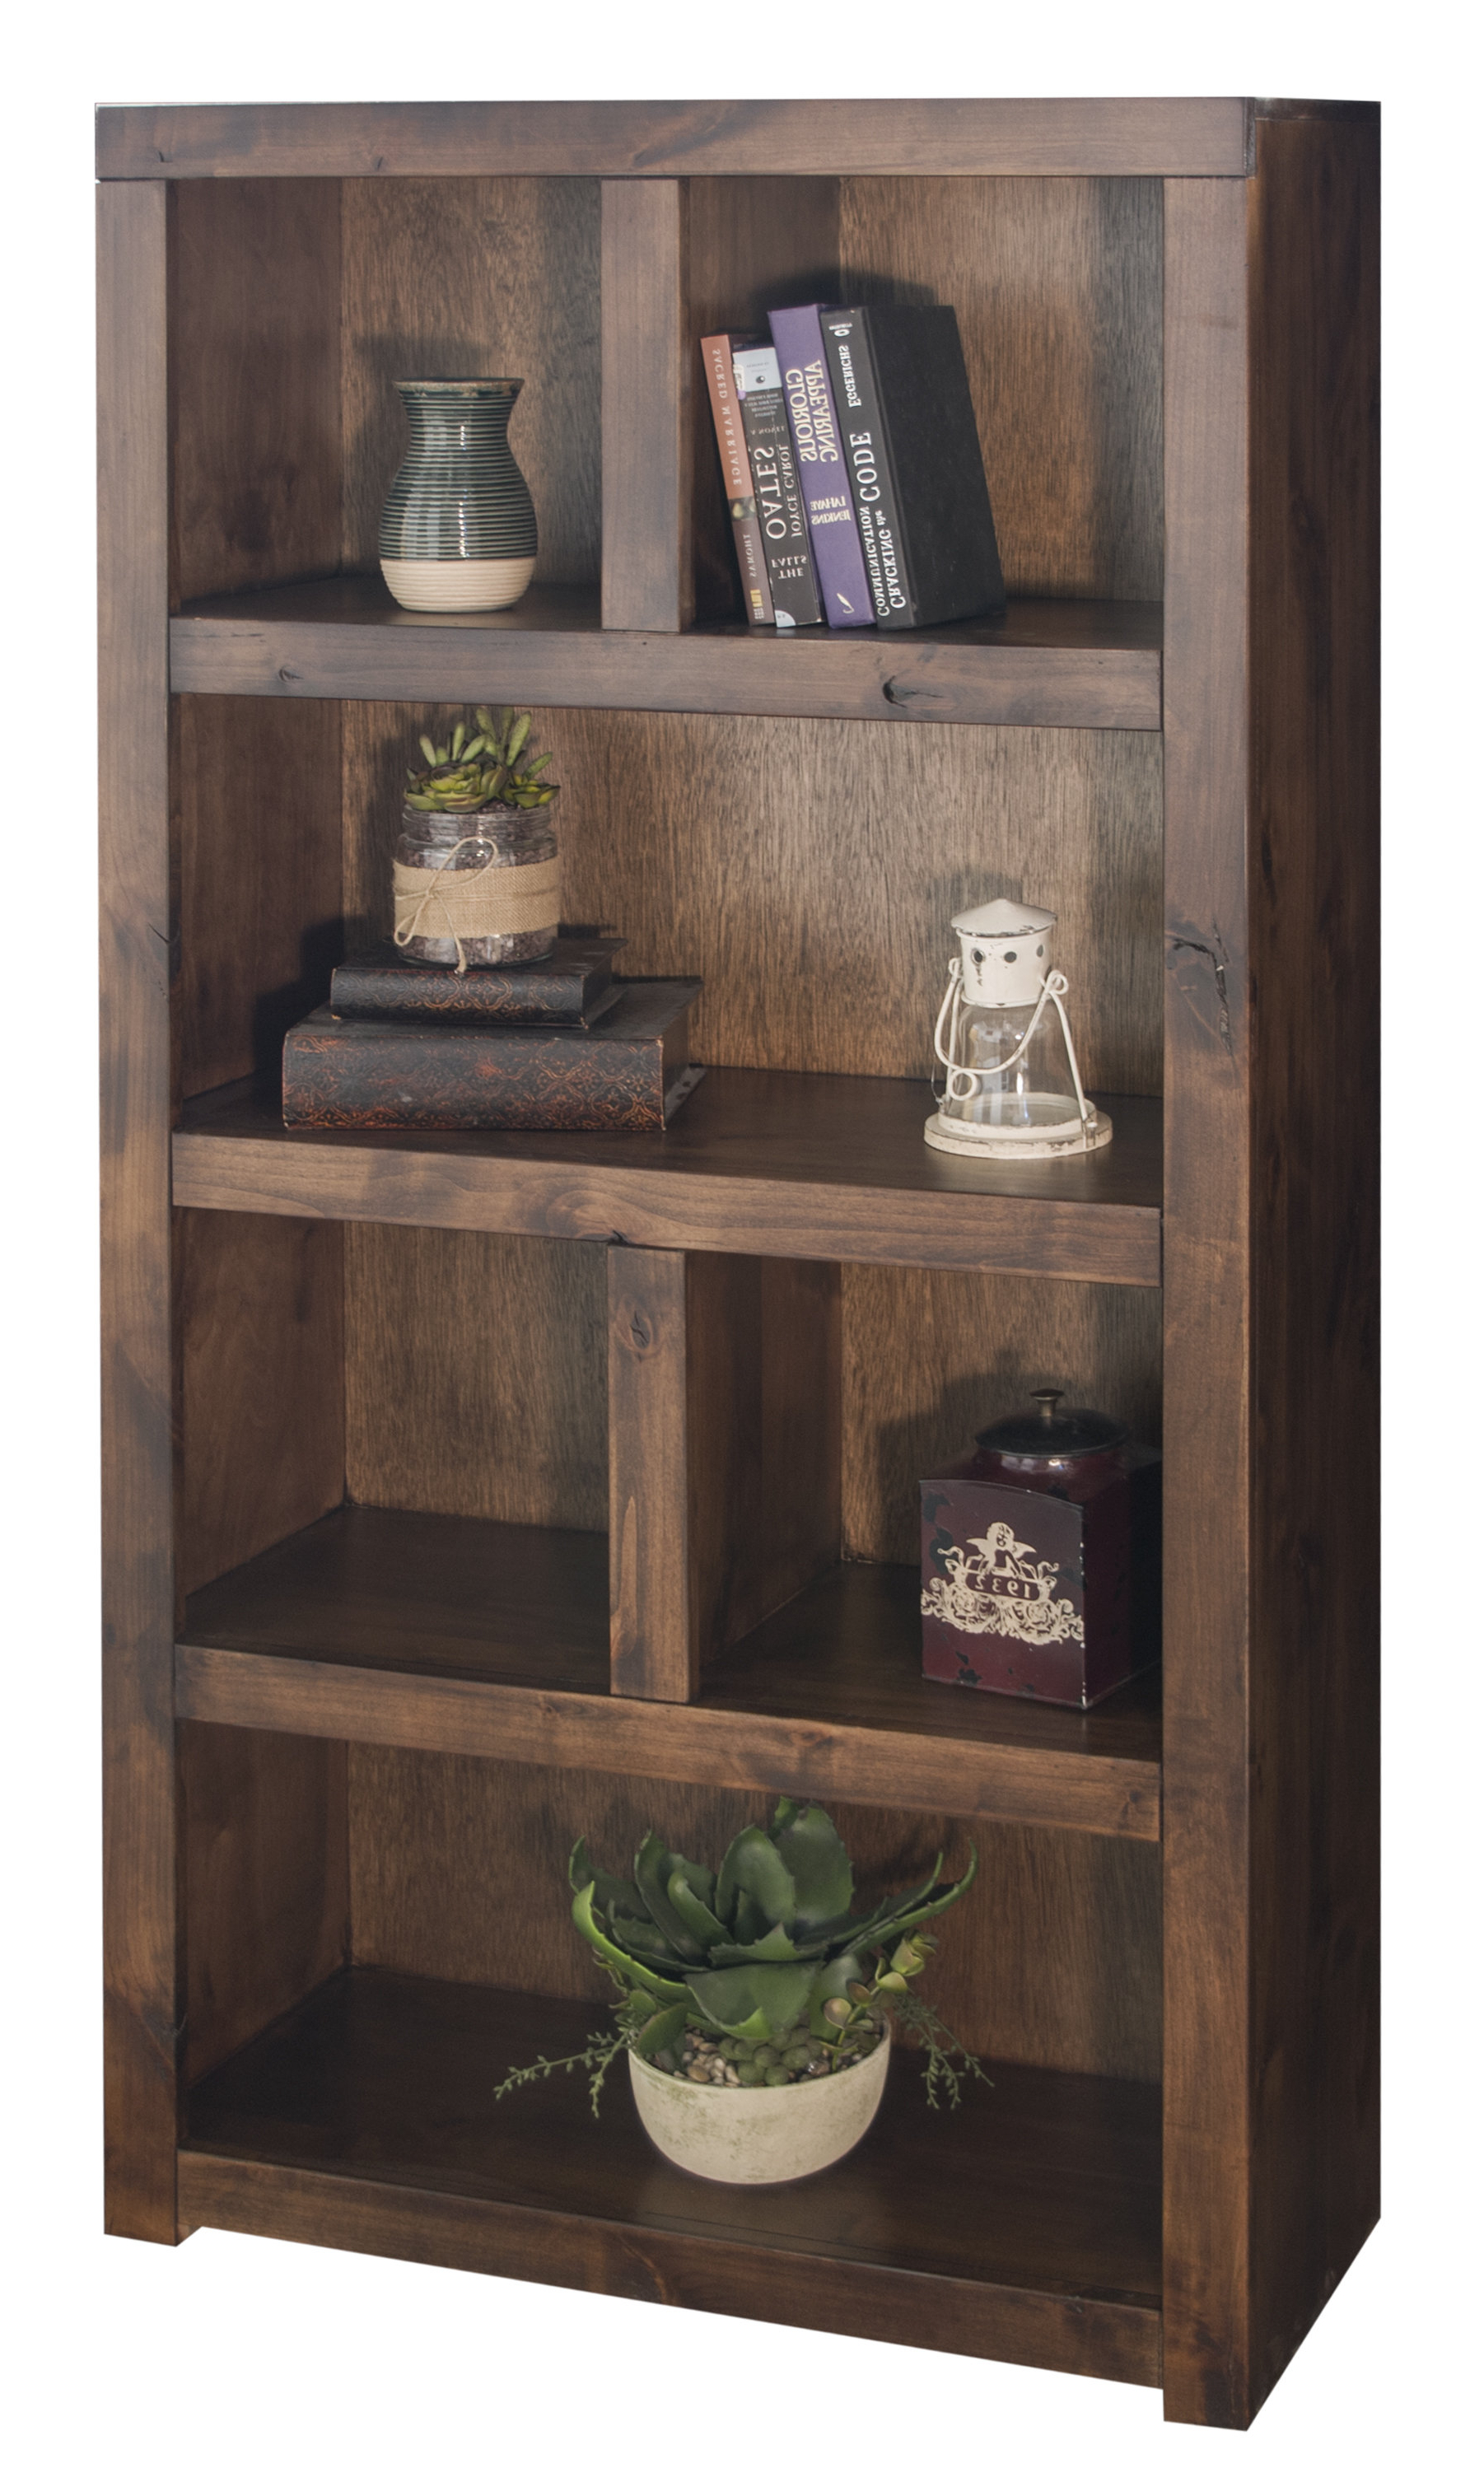 Pooler Standard Bookcase With Well Known Orford Standard Bookcases (Gallery 7 of 20)